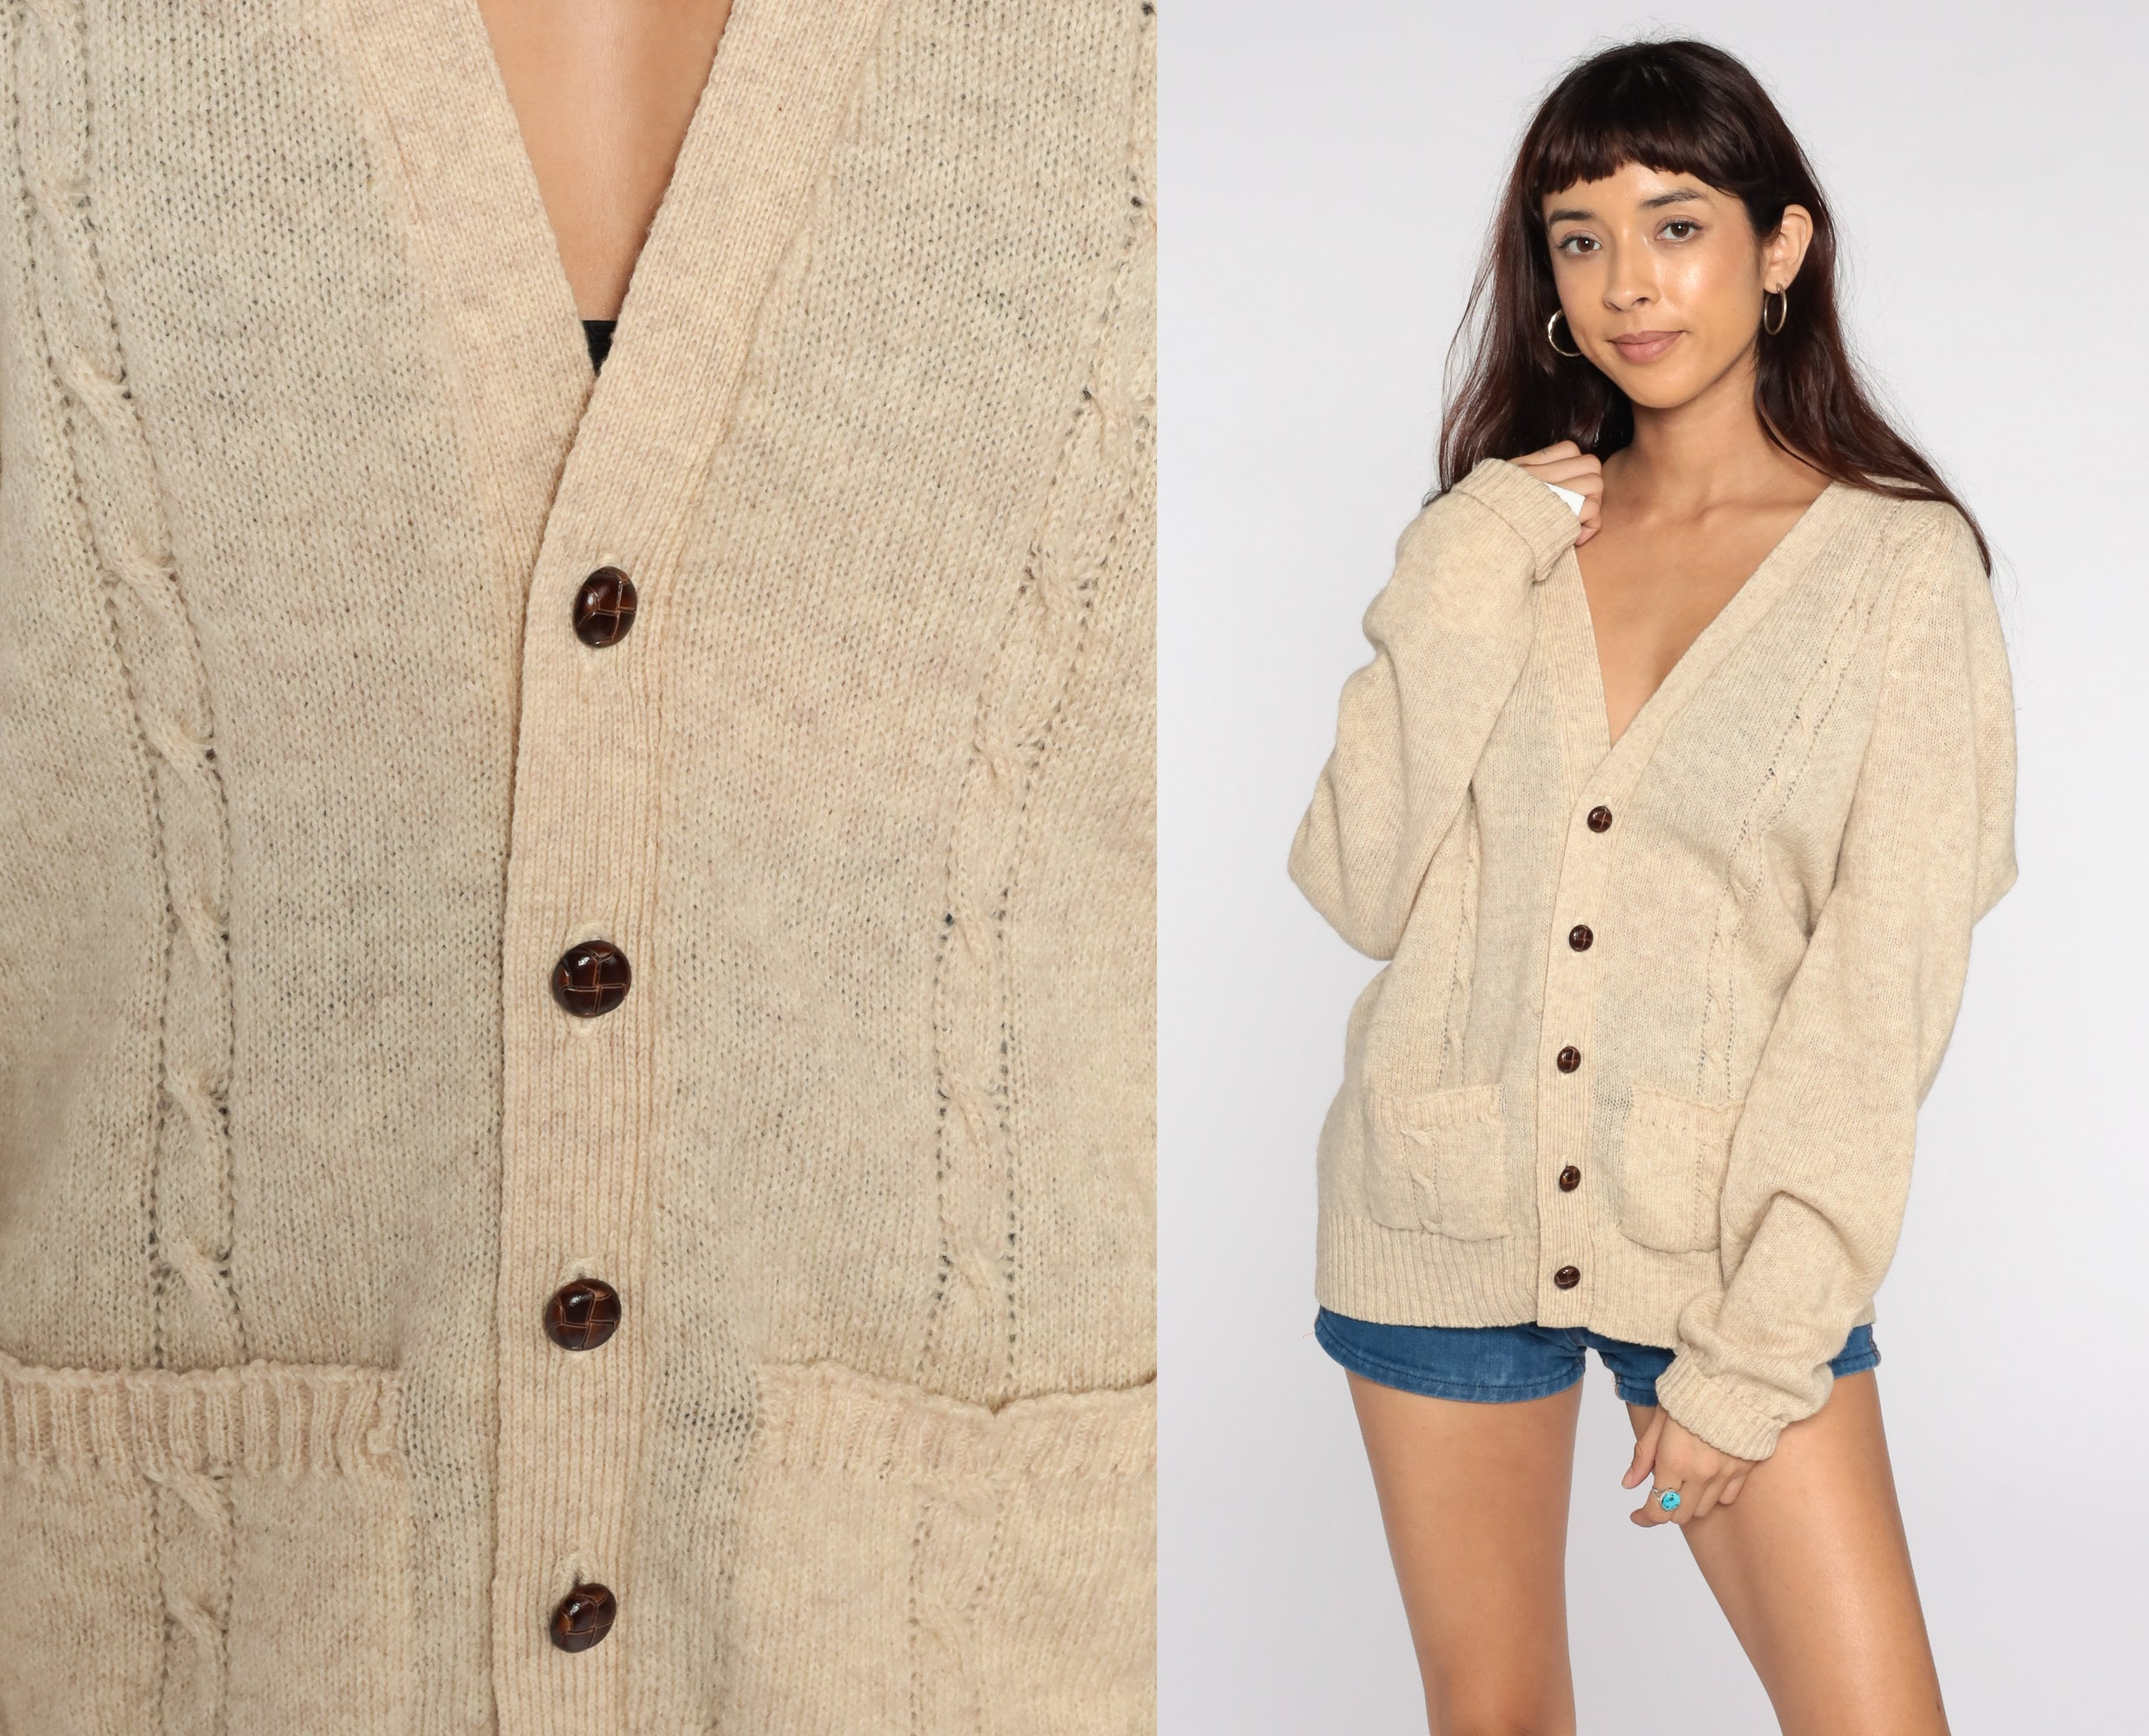 80s Sweatshirts, Sweaters, Vests | Women Cream Wool Cardigan Cable Knit Sweater 80S Boho Bohemian Fisherman Chunky Grandpa Vintage 1980S Button Up Cableknit Large Xl L $55.00 AT vintagedancer.com